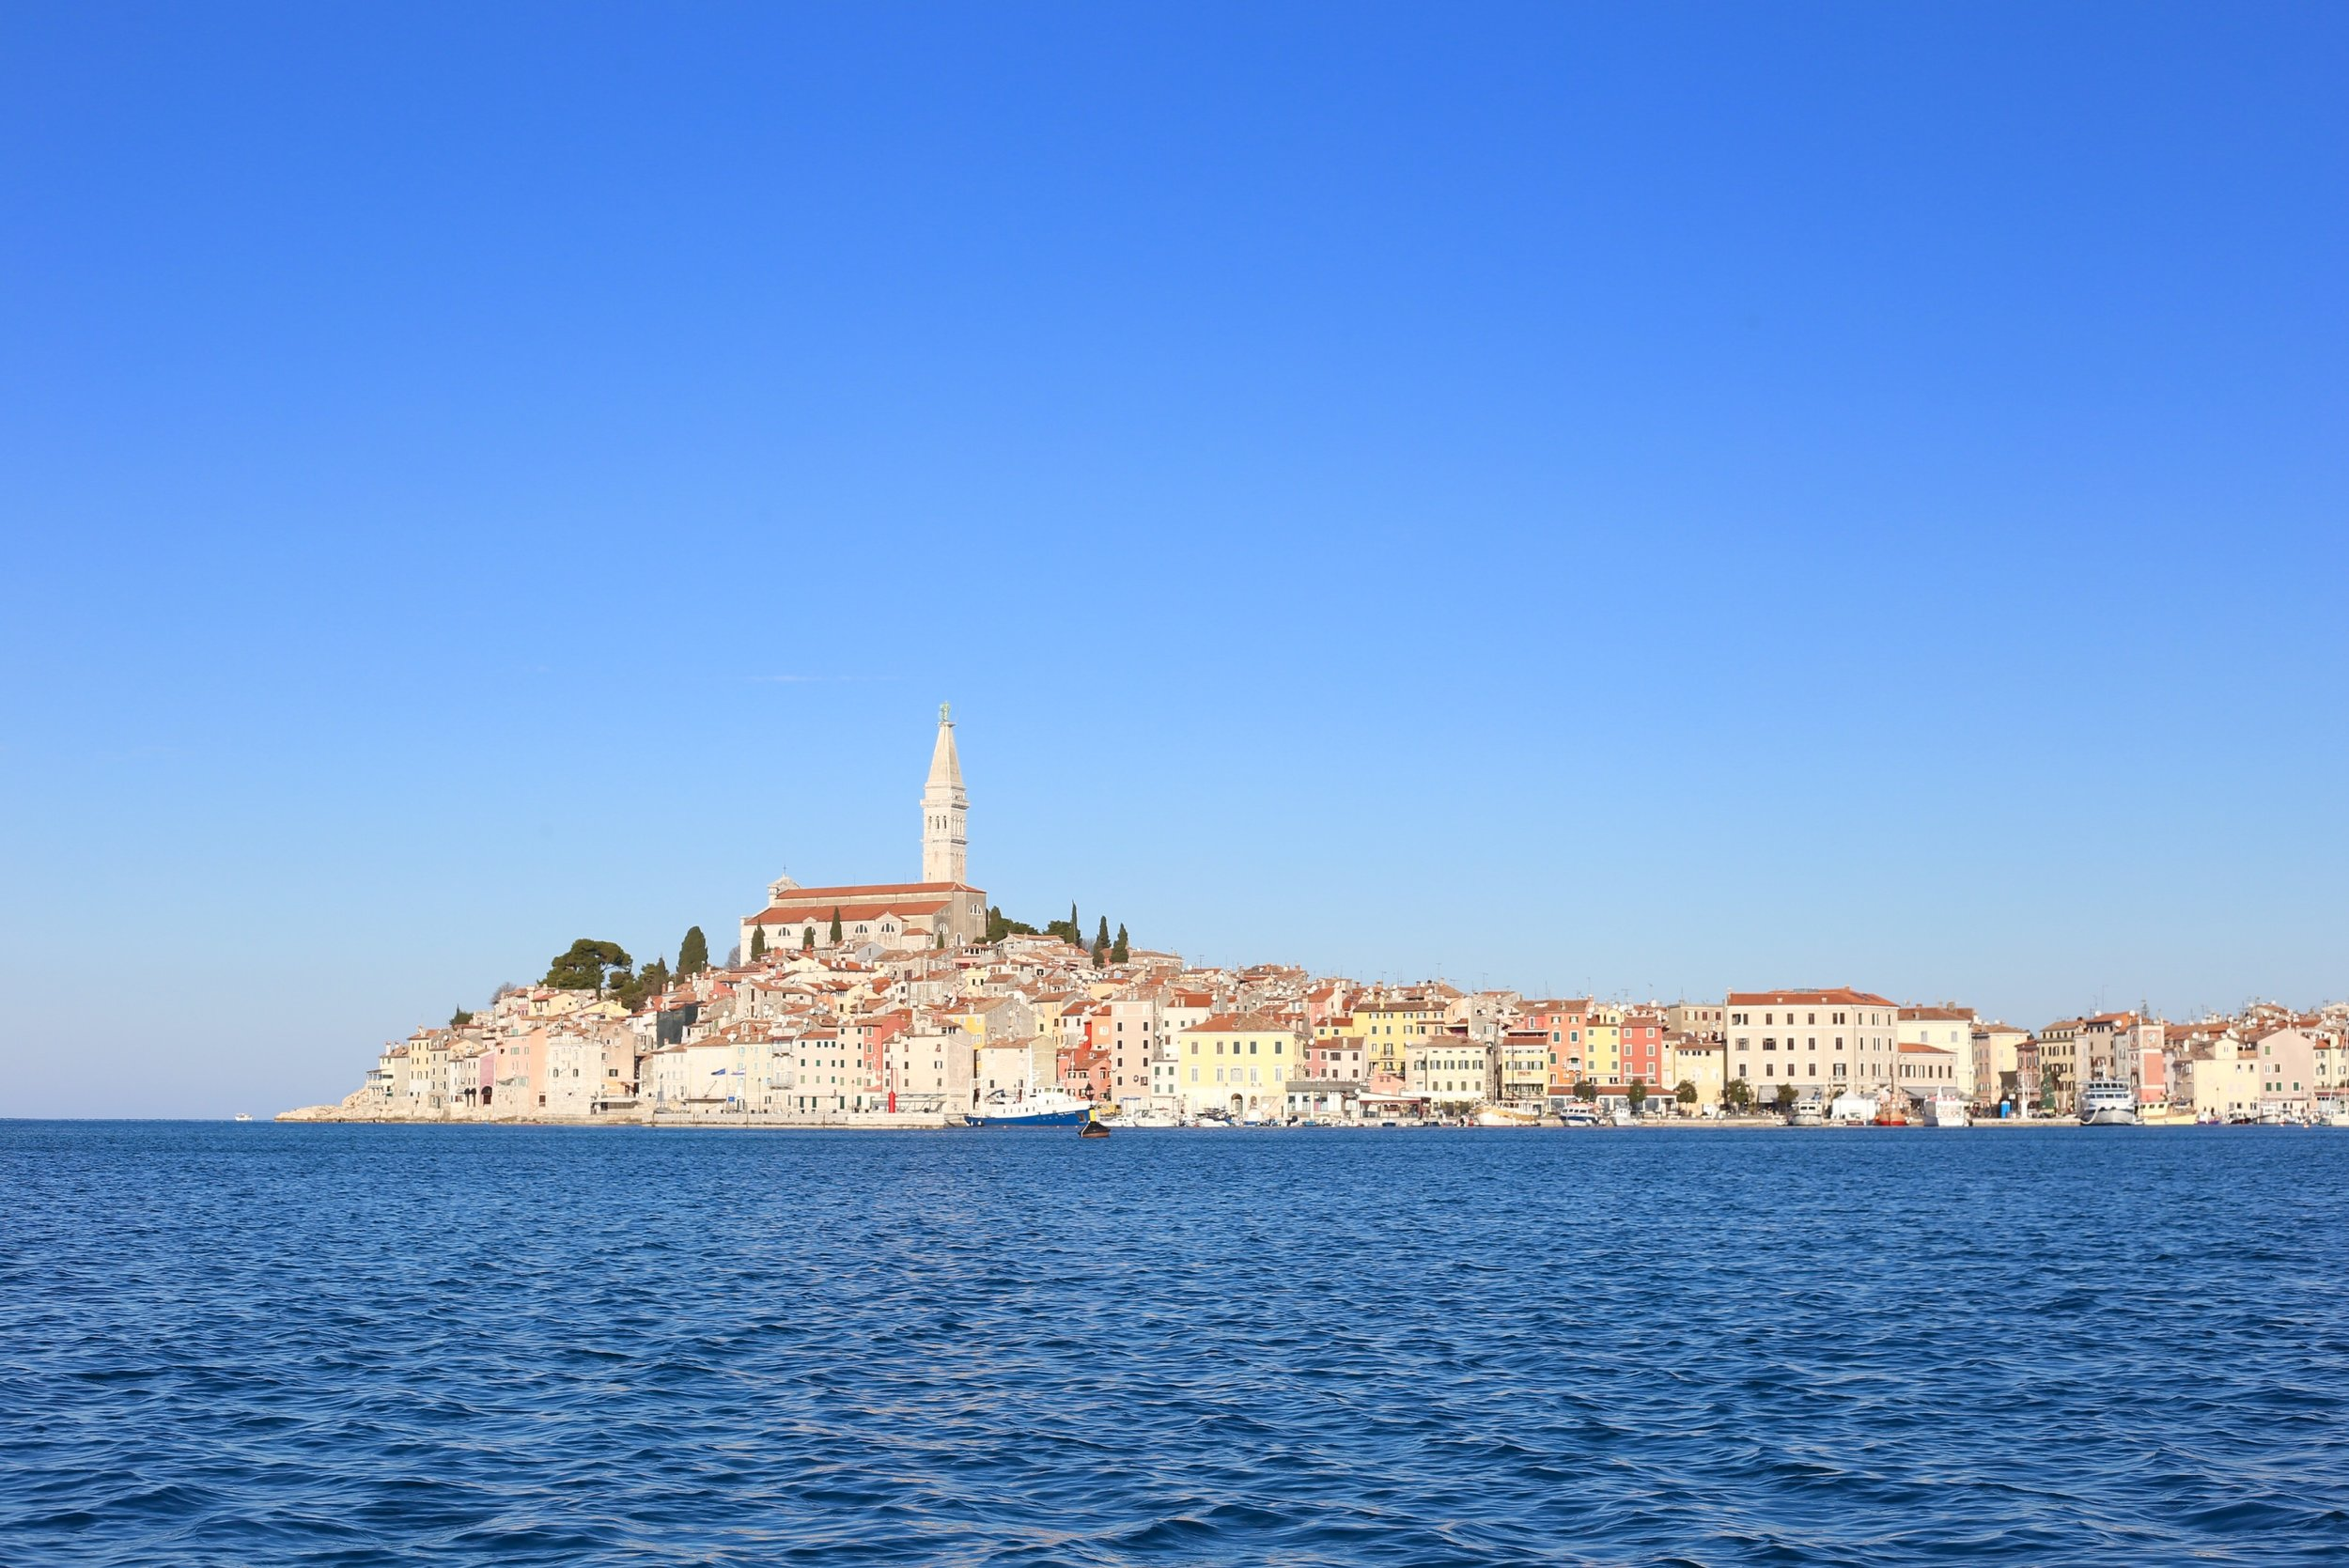 Blue sea and sky by Rovinj peninsula - a town sticks out in the sea.